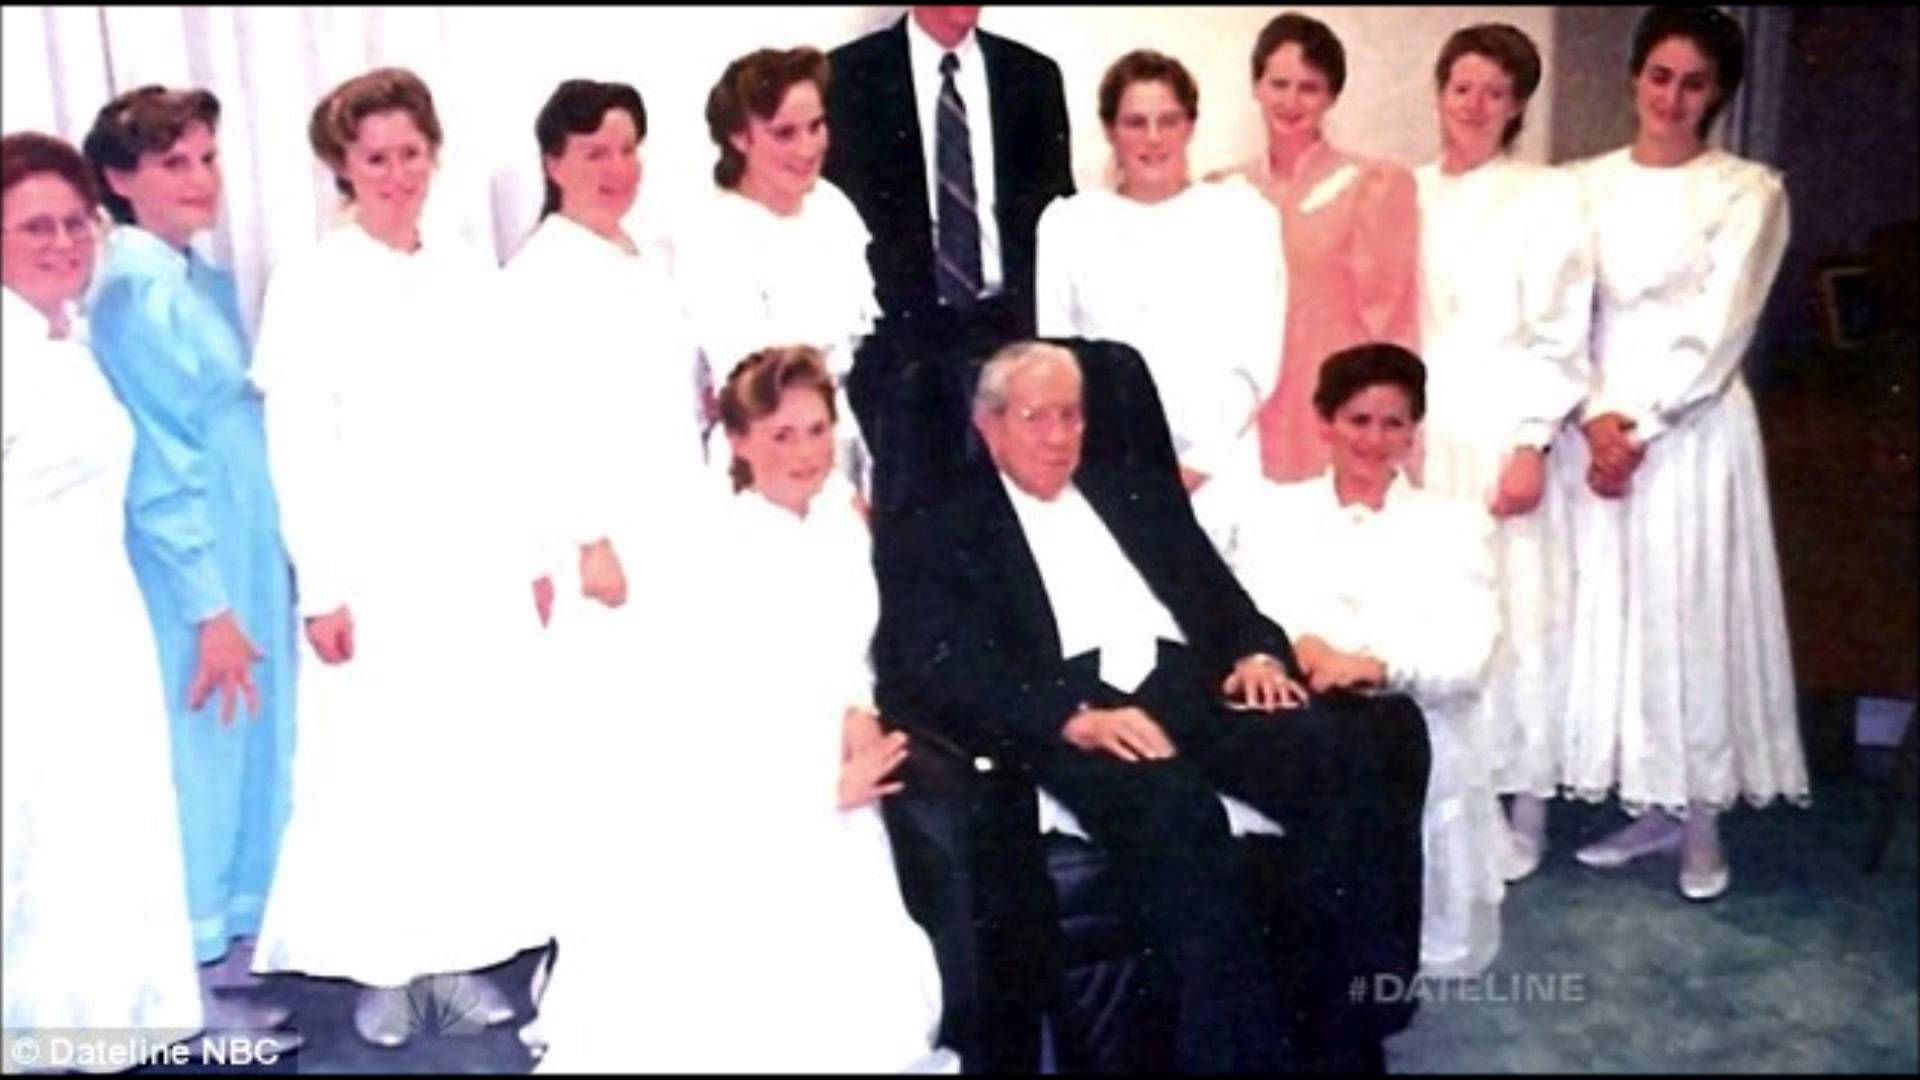 19 things you probably dont know about flds polygamists - HD 1920×1080